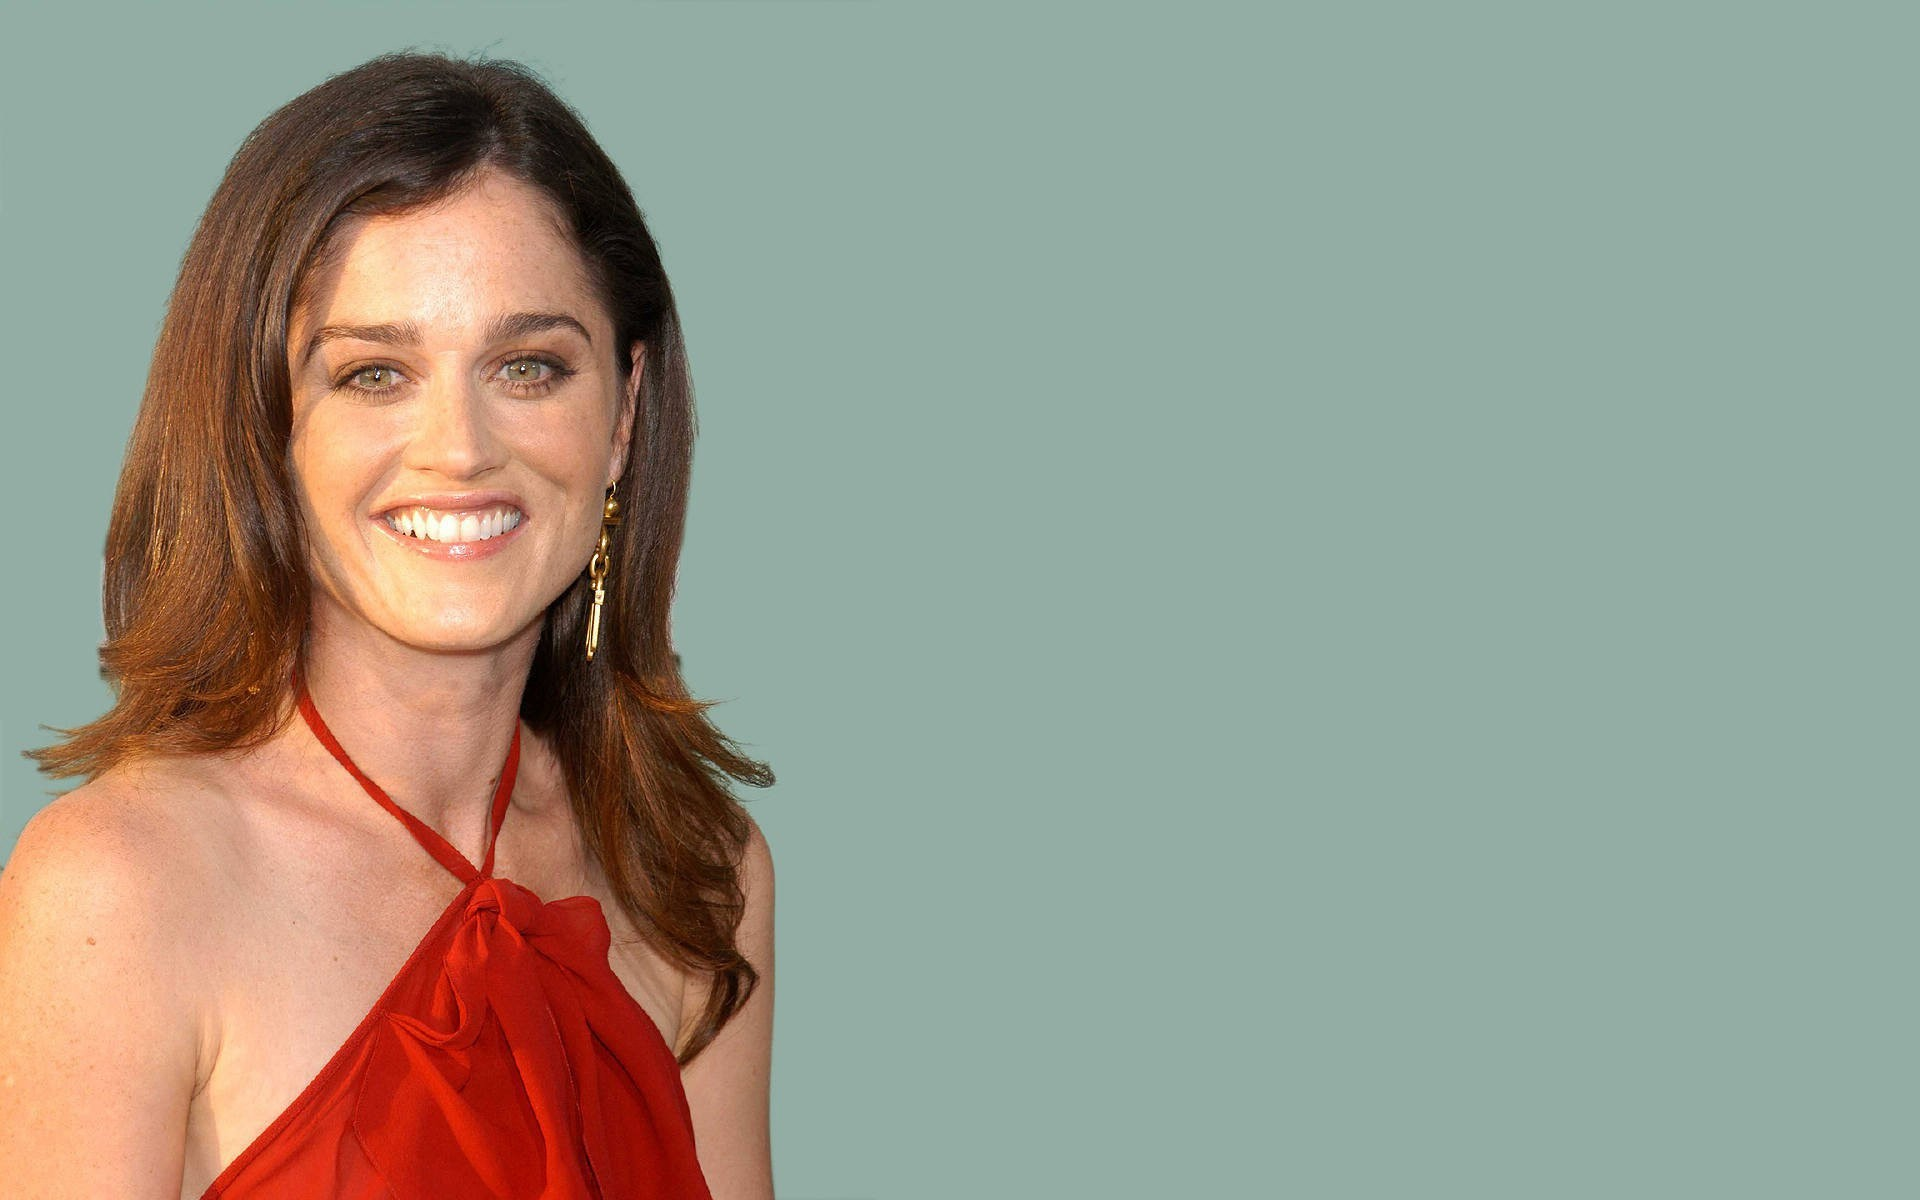 1920x1200 Robin Tunney 596067. UPLOAD. TAGS: The Mentalist